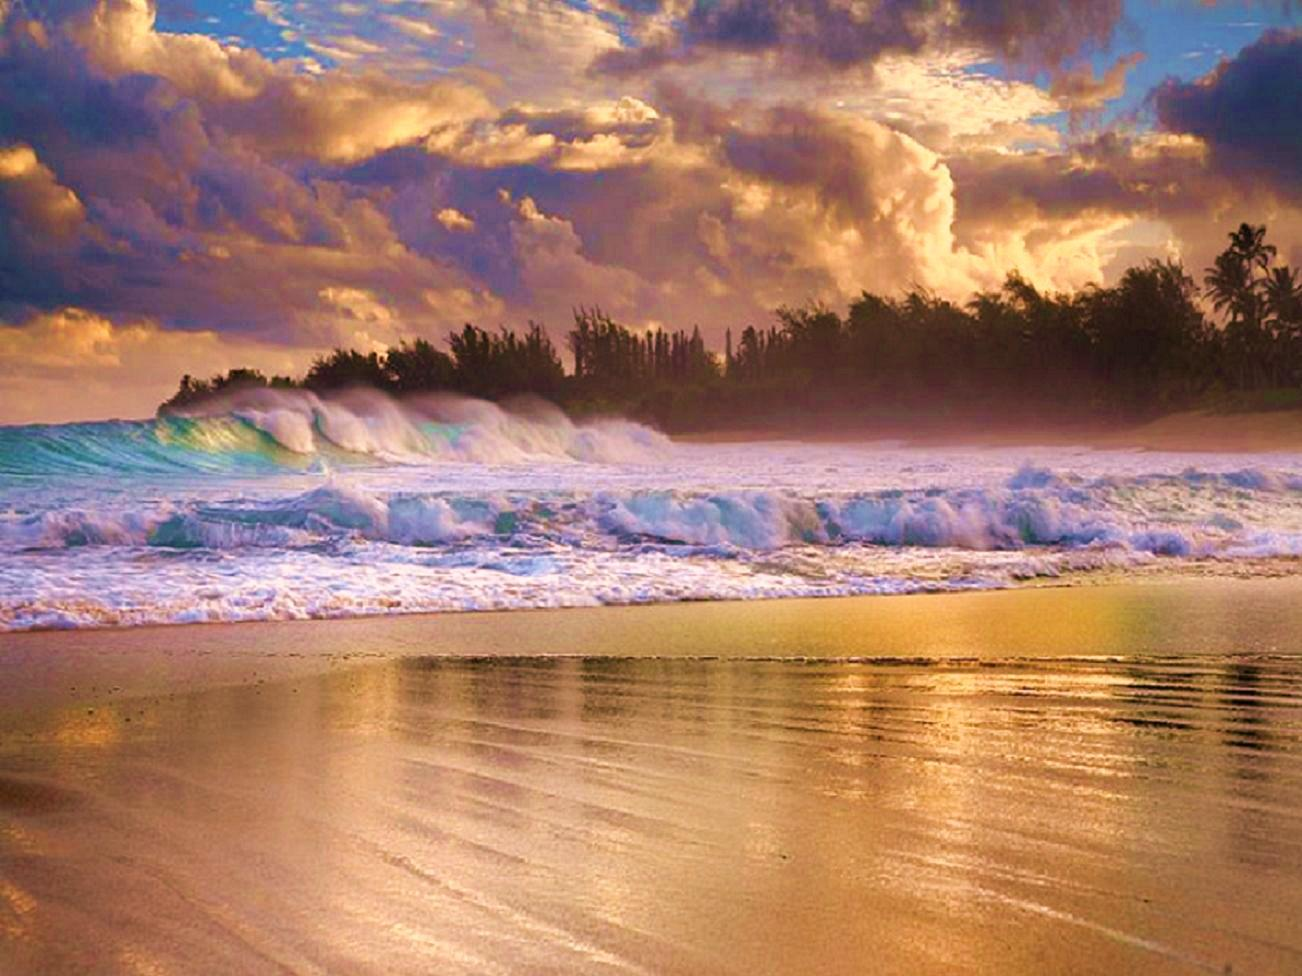 Beach after storm   84342   High Quality and Resolution Wallpapers 1302x976